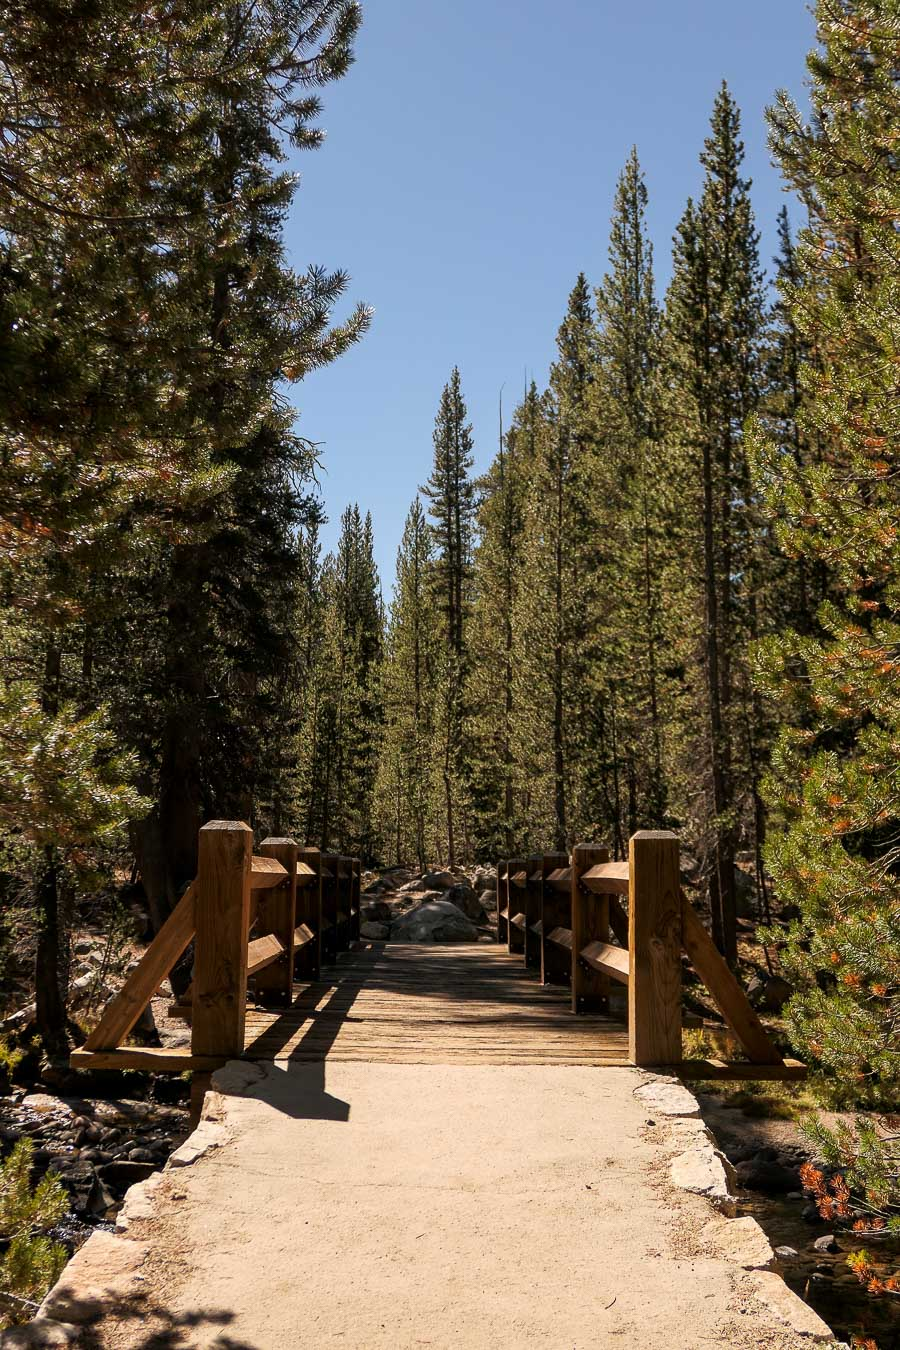 Yosemite in Fall Photos - Tuolumne - Twin Bridges